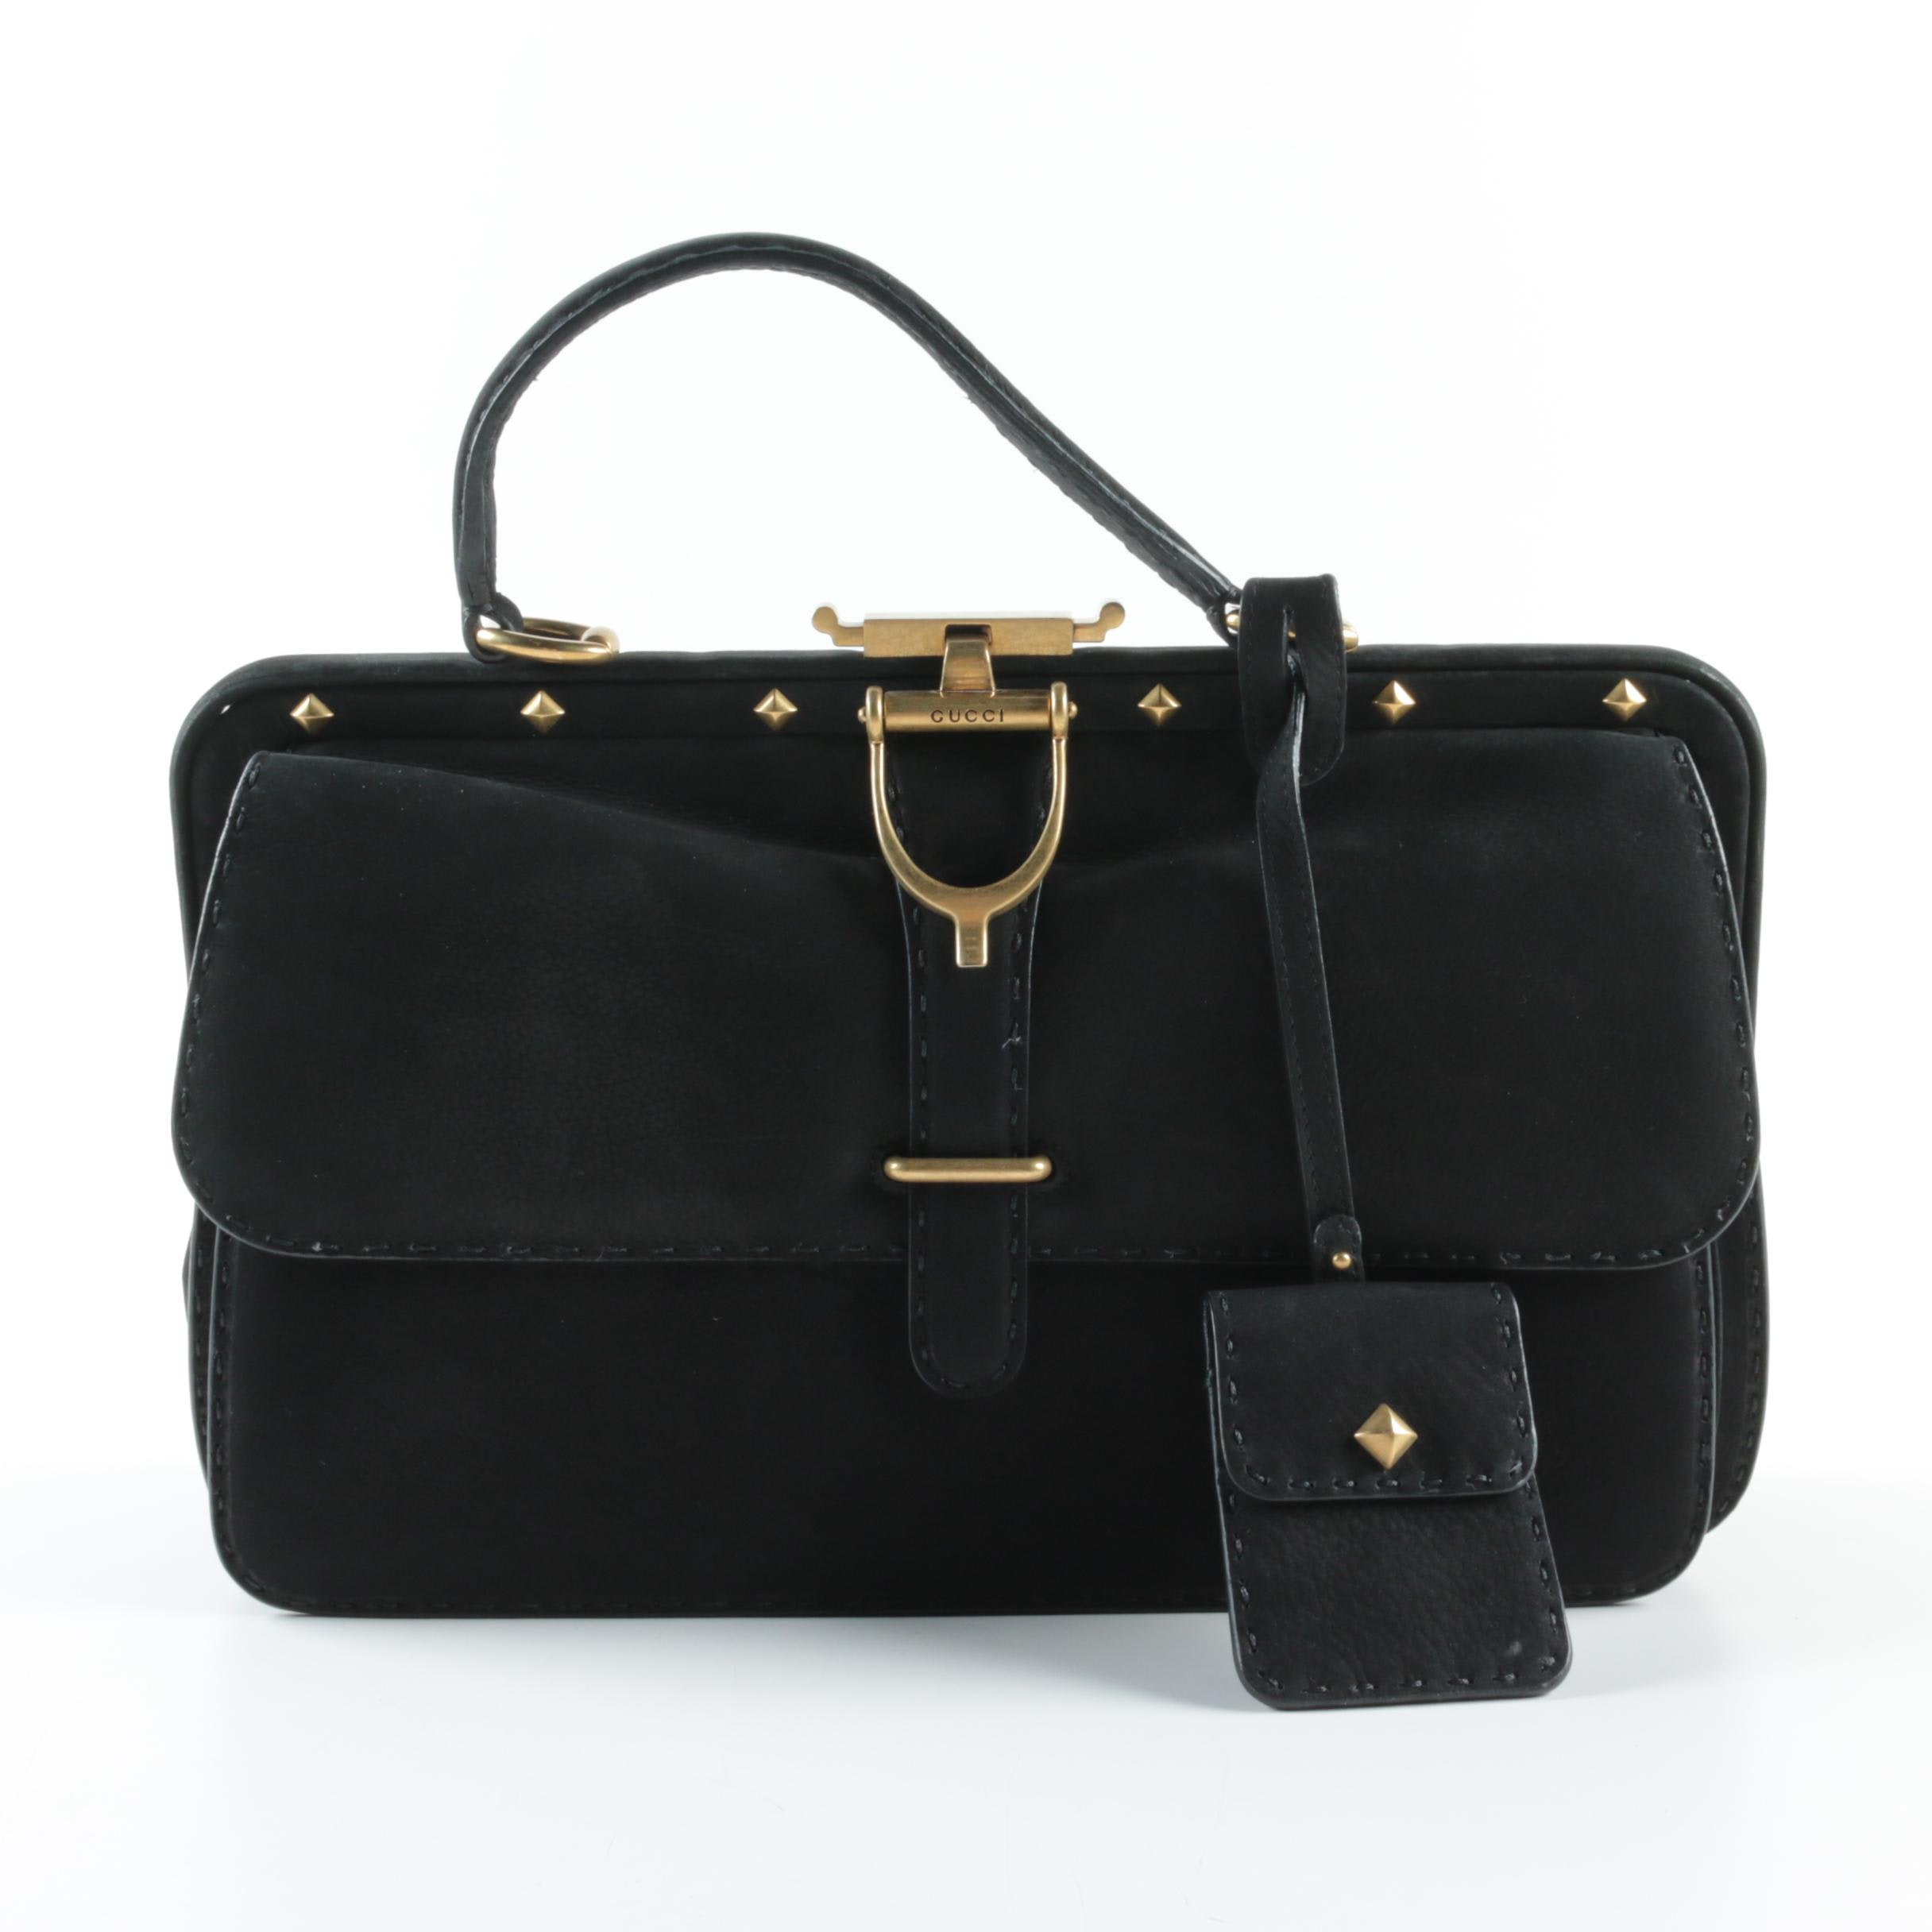 Gucci Black Suede Lady Stirrup Handbag